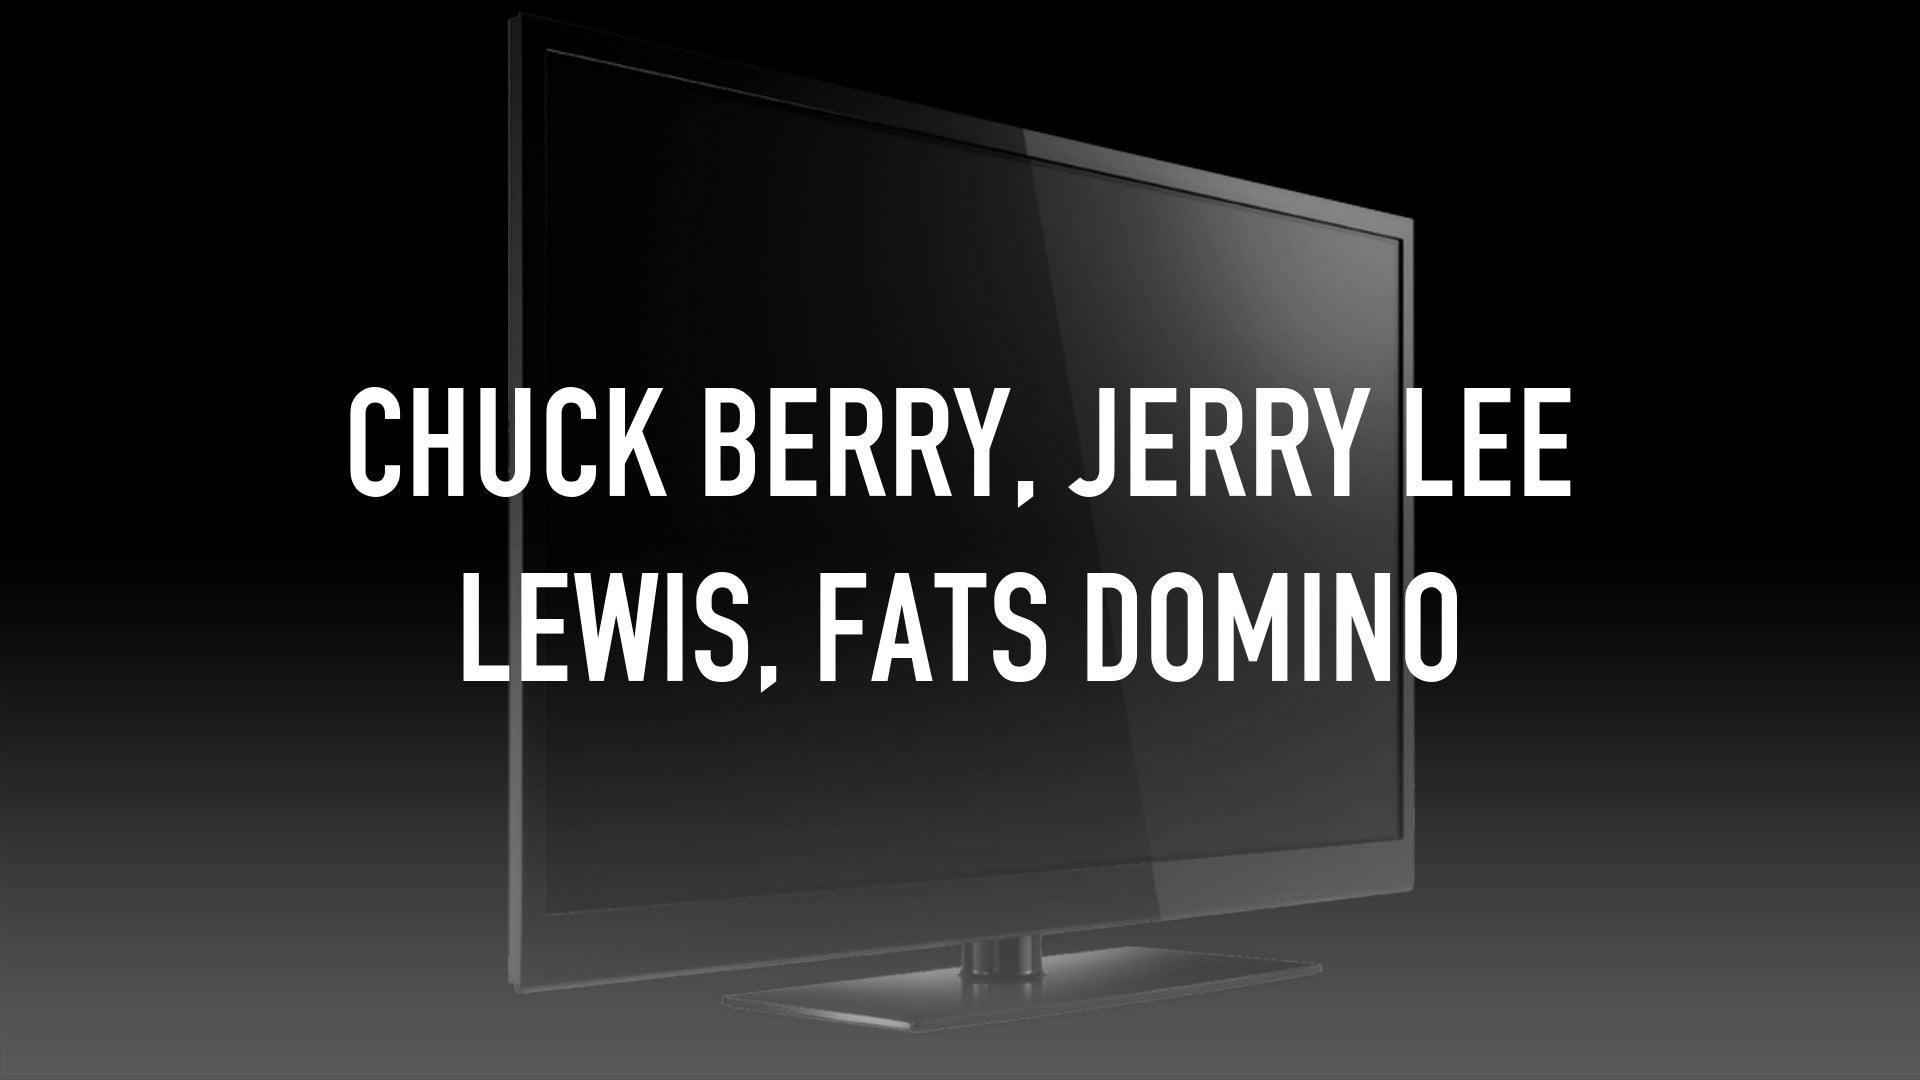 Chuck Berry, Jerry Lee Lewis, Fats Domino